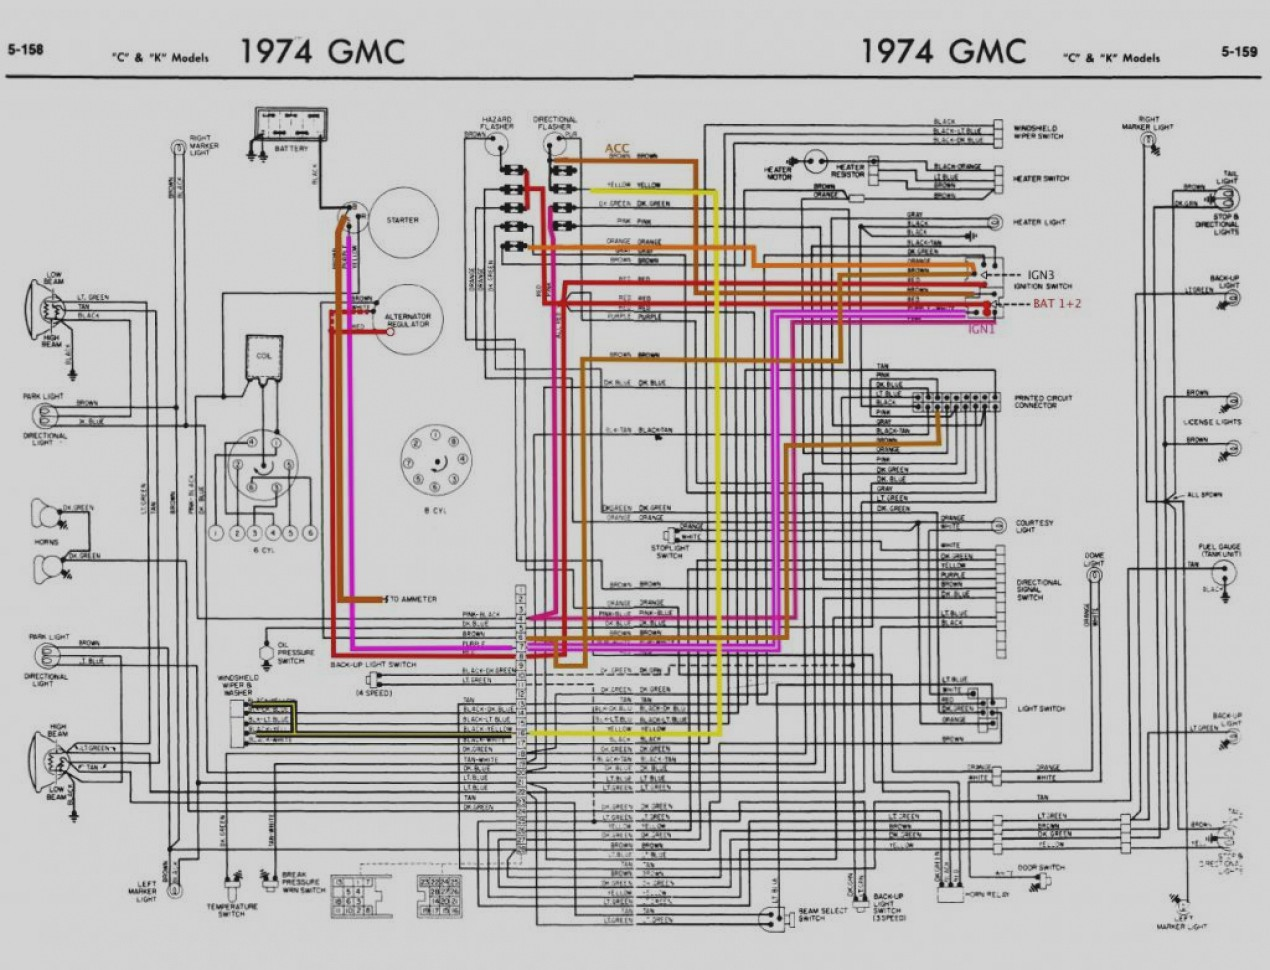 hight resolution of 1974 chevrolet k10 wiring diagram wiring diagram paper 1974 chevy c10 wiring diagram wiring diagrams konsult